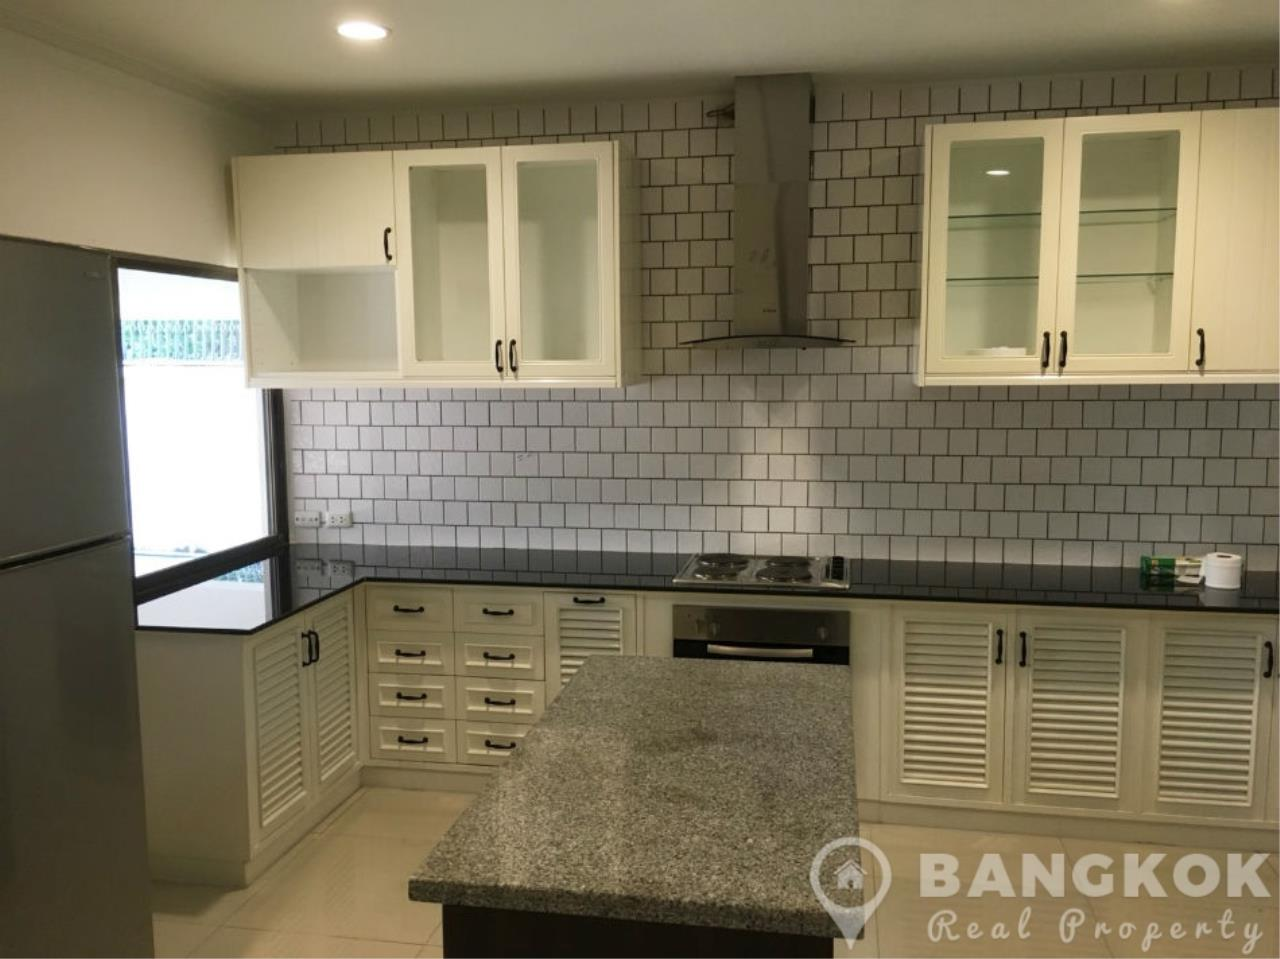 Bangkok Real Property Agency's Spacious 3 Bed 3 Bath Detached Thonglor House  4